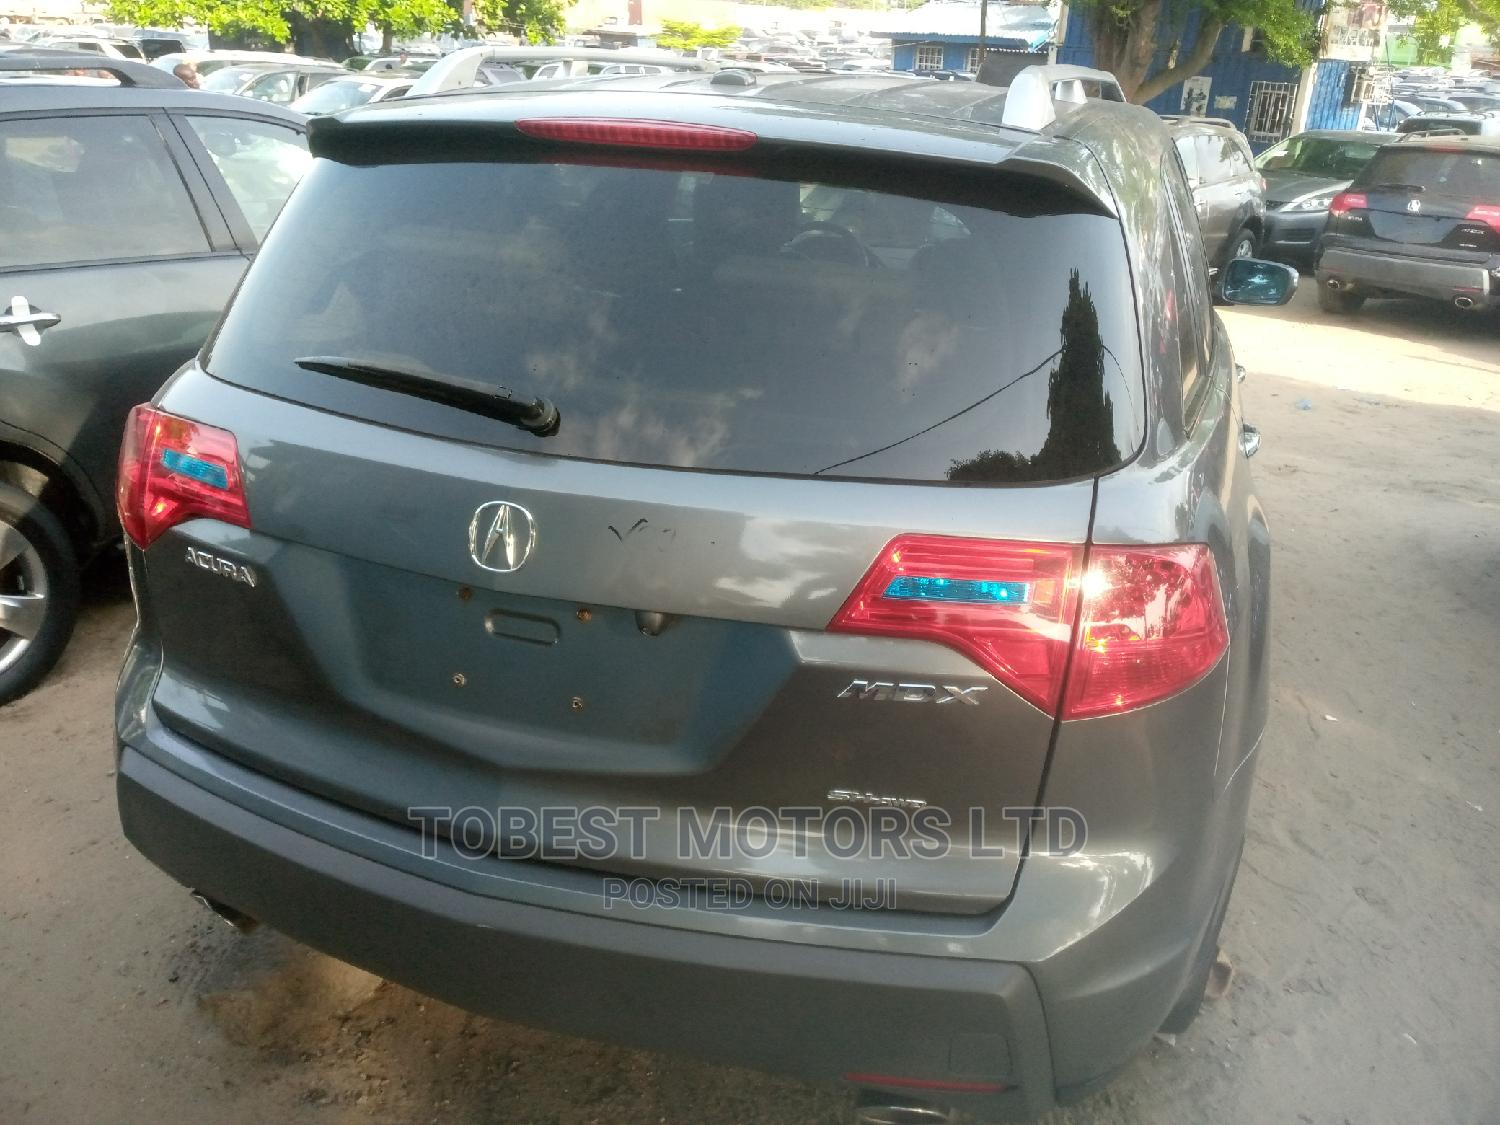 Archive: Acura MDX 2009 SUV 4dr AWD (3.7 6cyl 5A) Gray